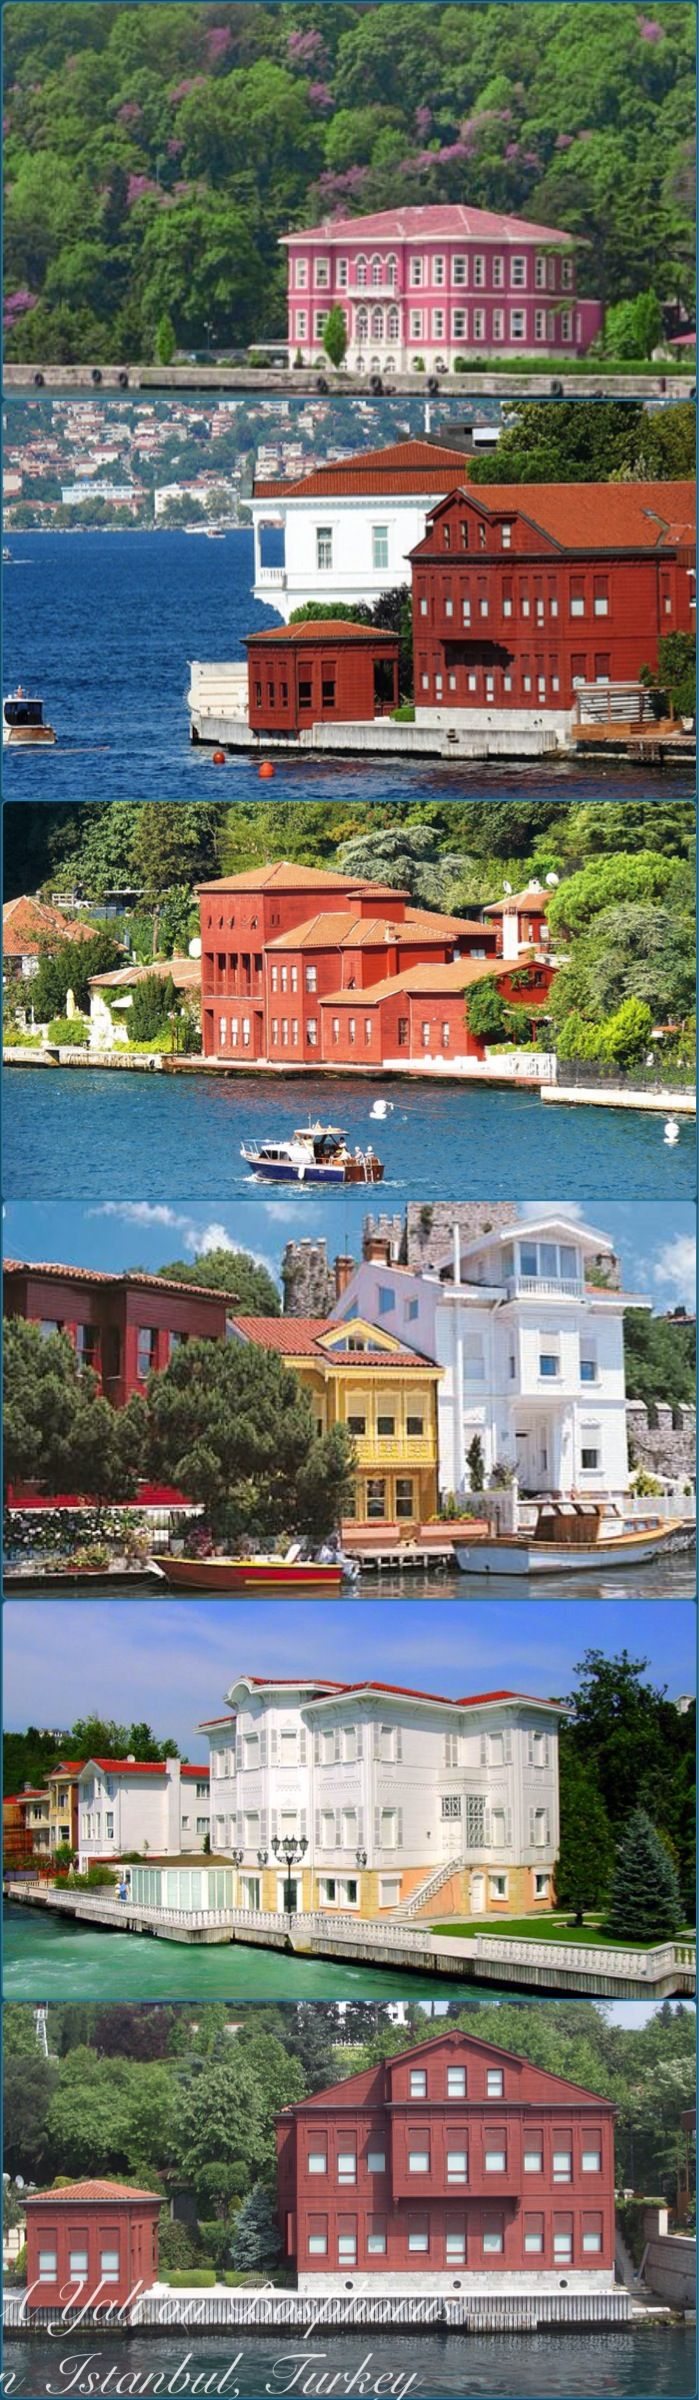 Favorite part of the city: ferry ride seeing these beautiful waterfront homes! Istanbul Bosphorus,Turkey